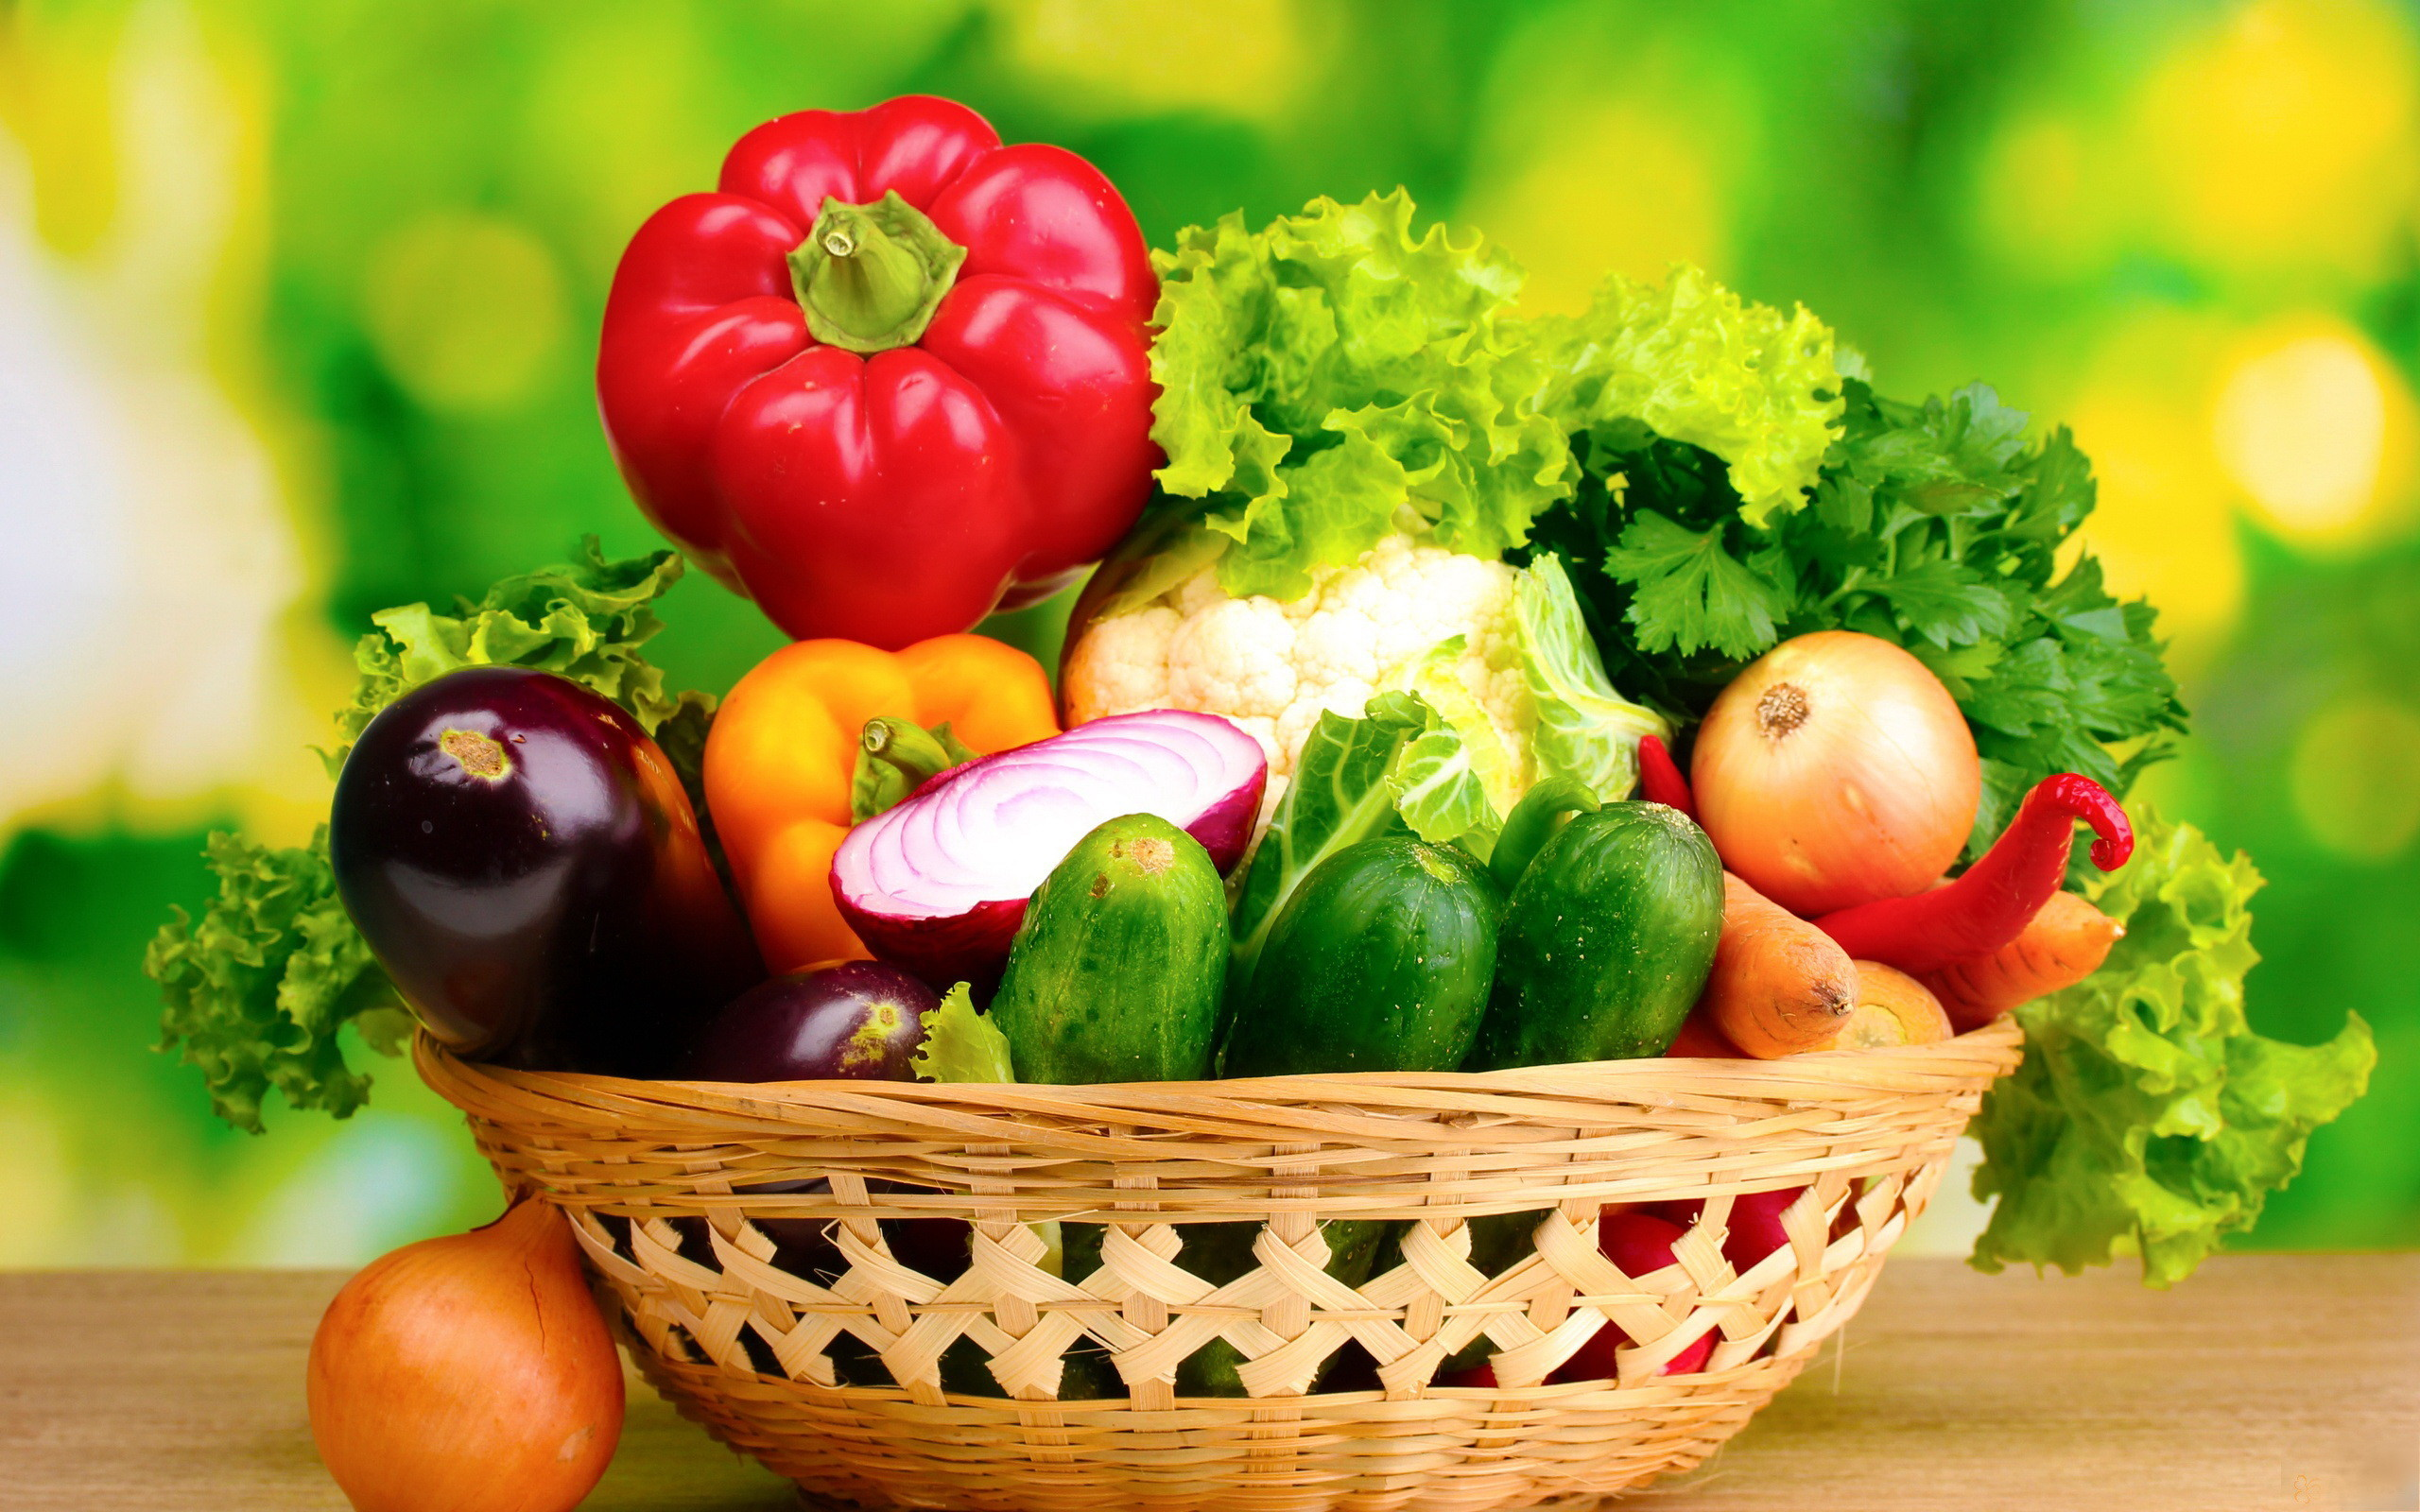 Res: 2560x1600, Fruits And Vegetables Basket